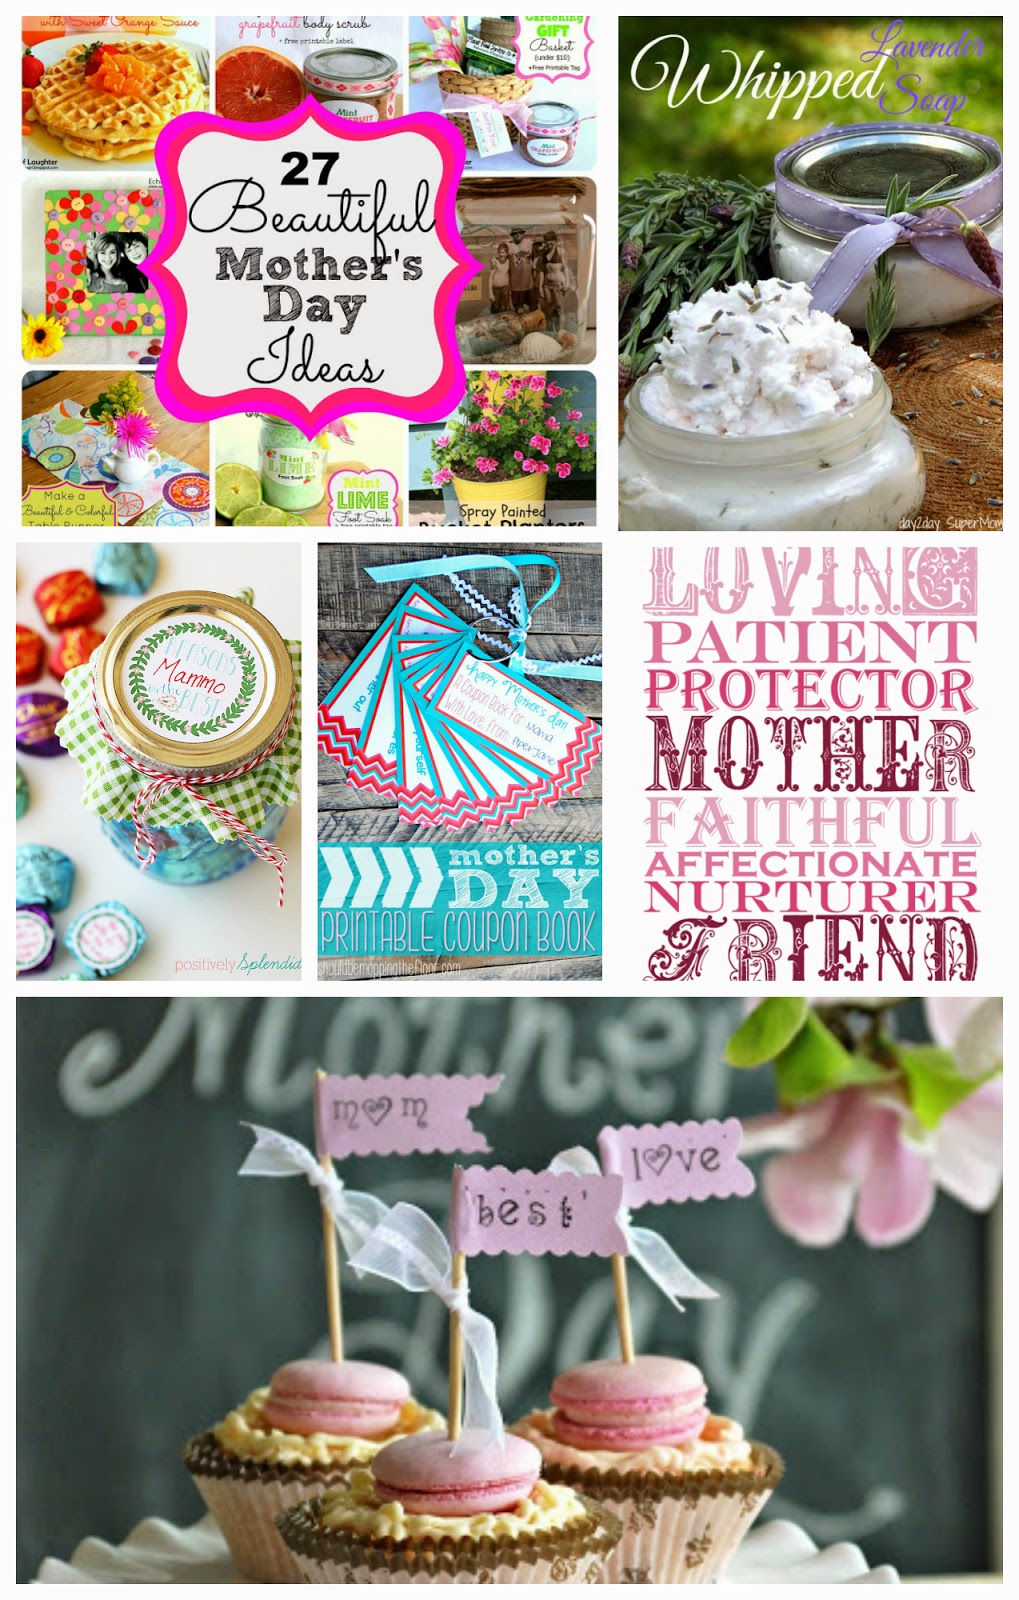 Say G'Day Saturday Linky Party, Join my Mother's Day Group Board on Pinterest, Natasha in Oz.